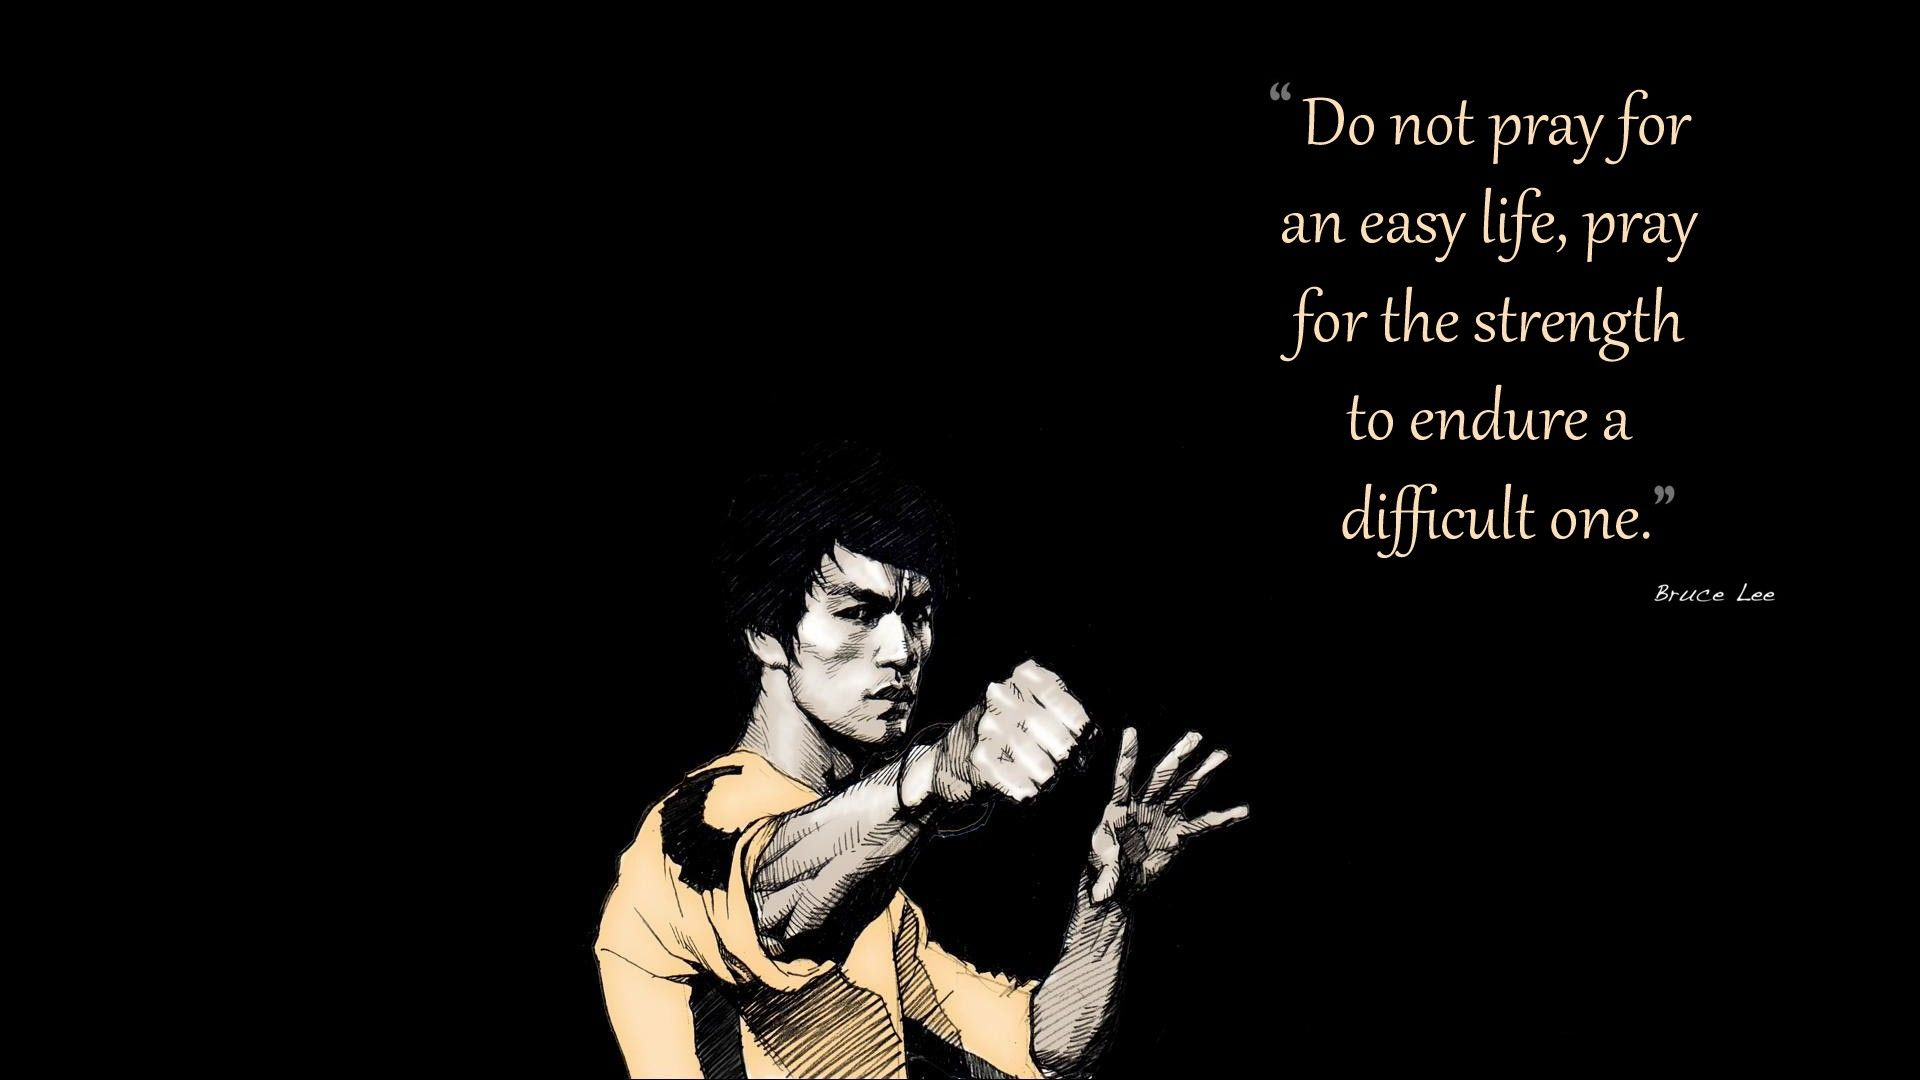 """Do not pray for an easy life, pray for the strength to endure a difficult one."" - Bruce Lee"